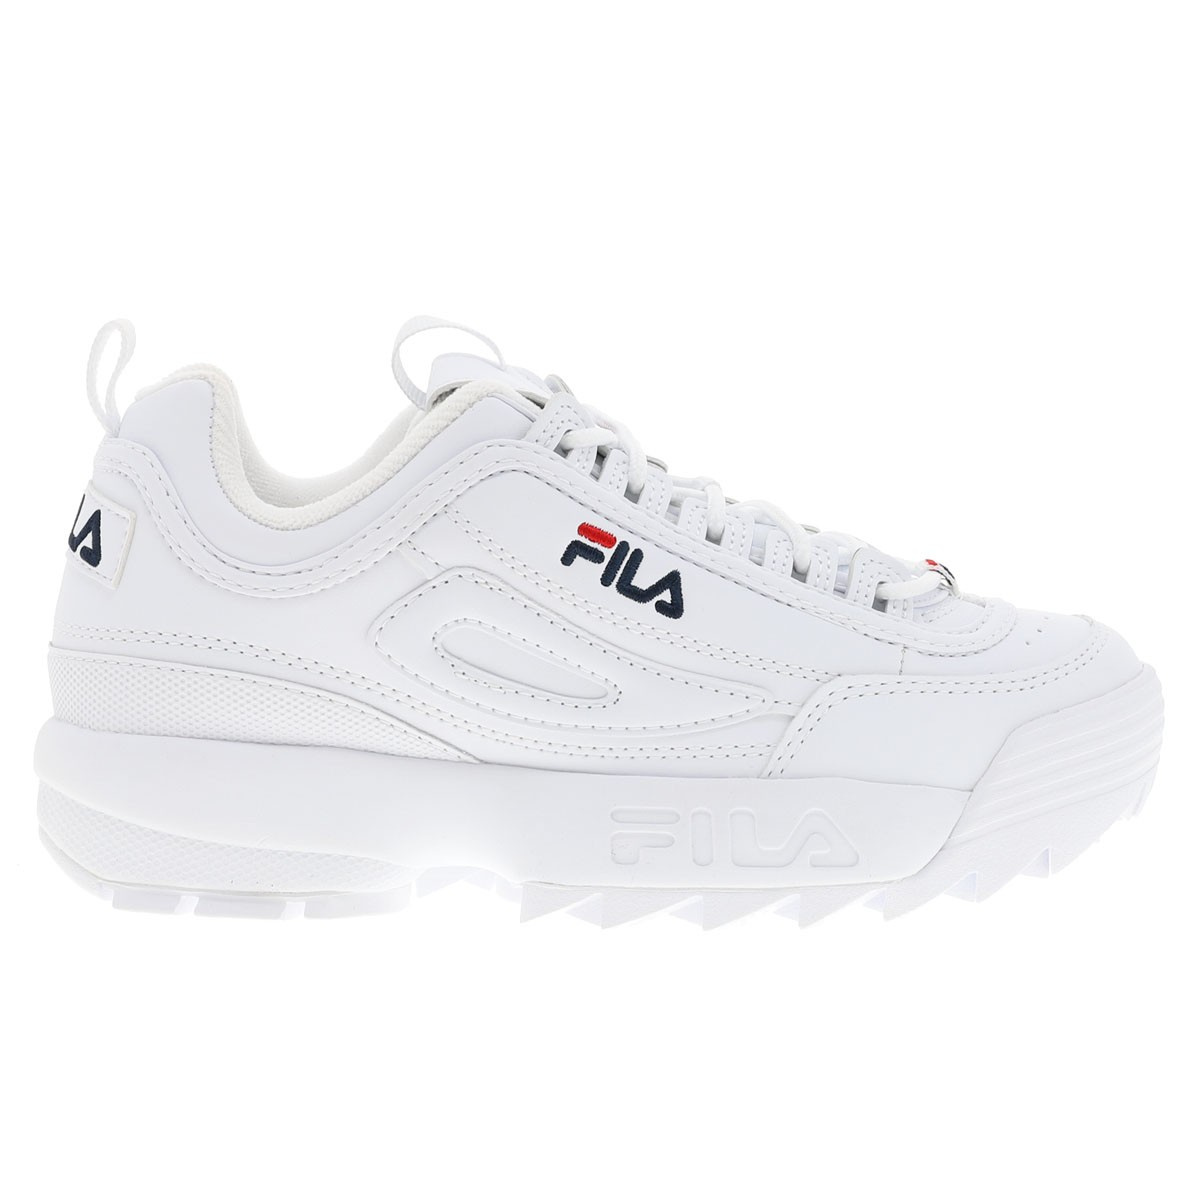 Ccv Baskets Disruptor Mode Femme Blanches Fila Tc51JlFu3K